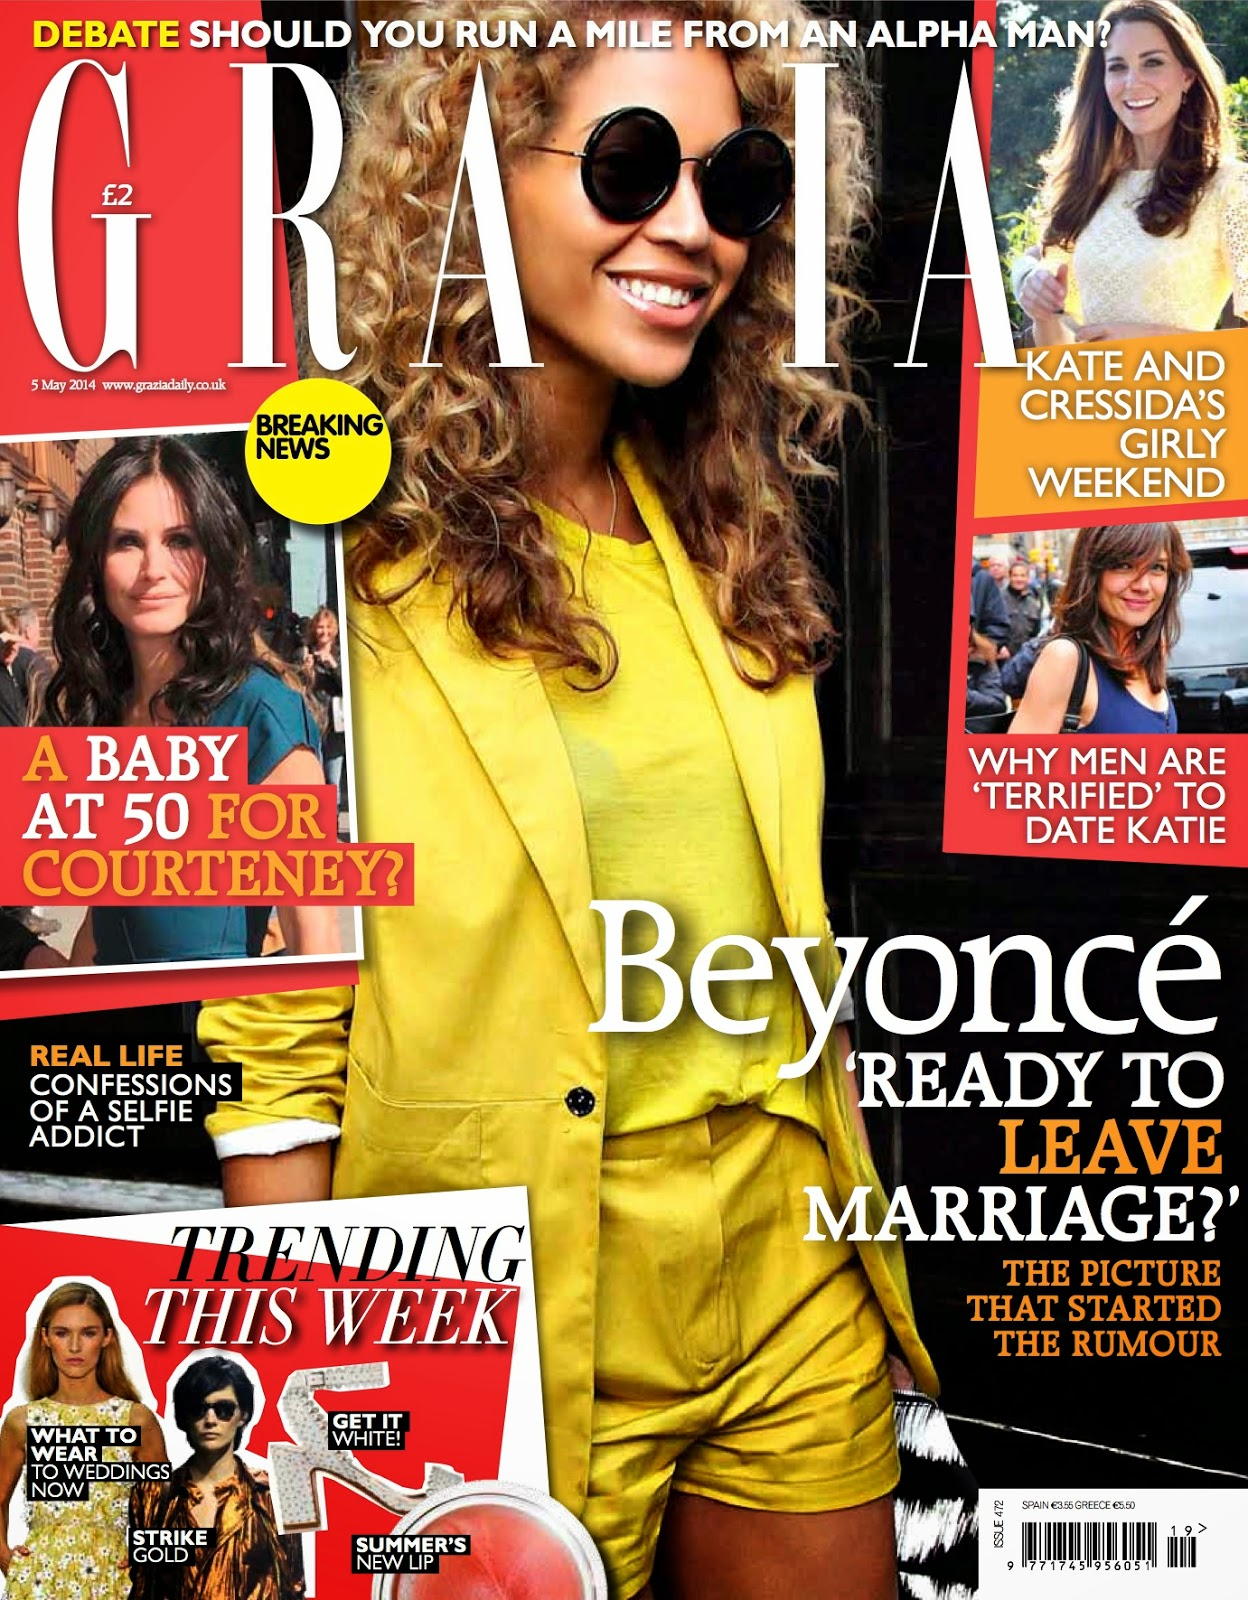 2014 Wedding Trends Feature in Grazia